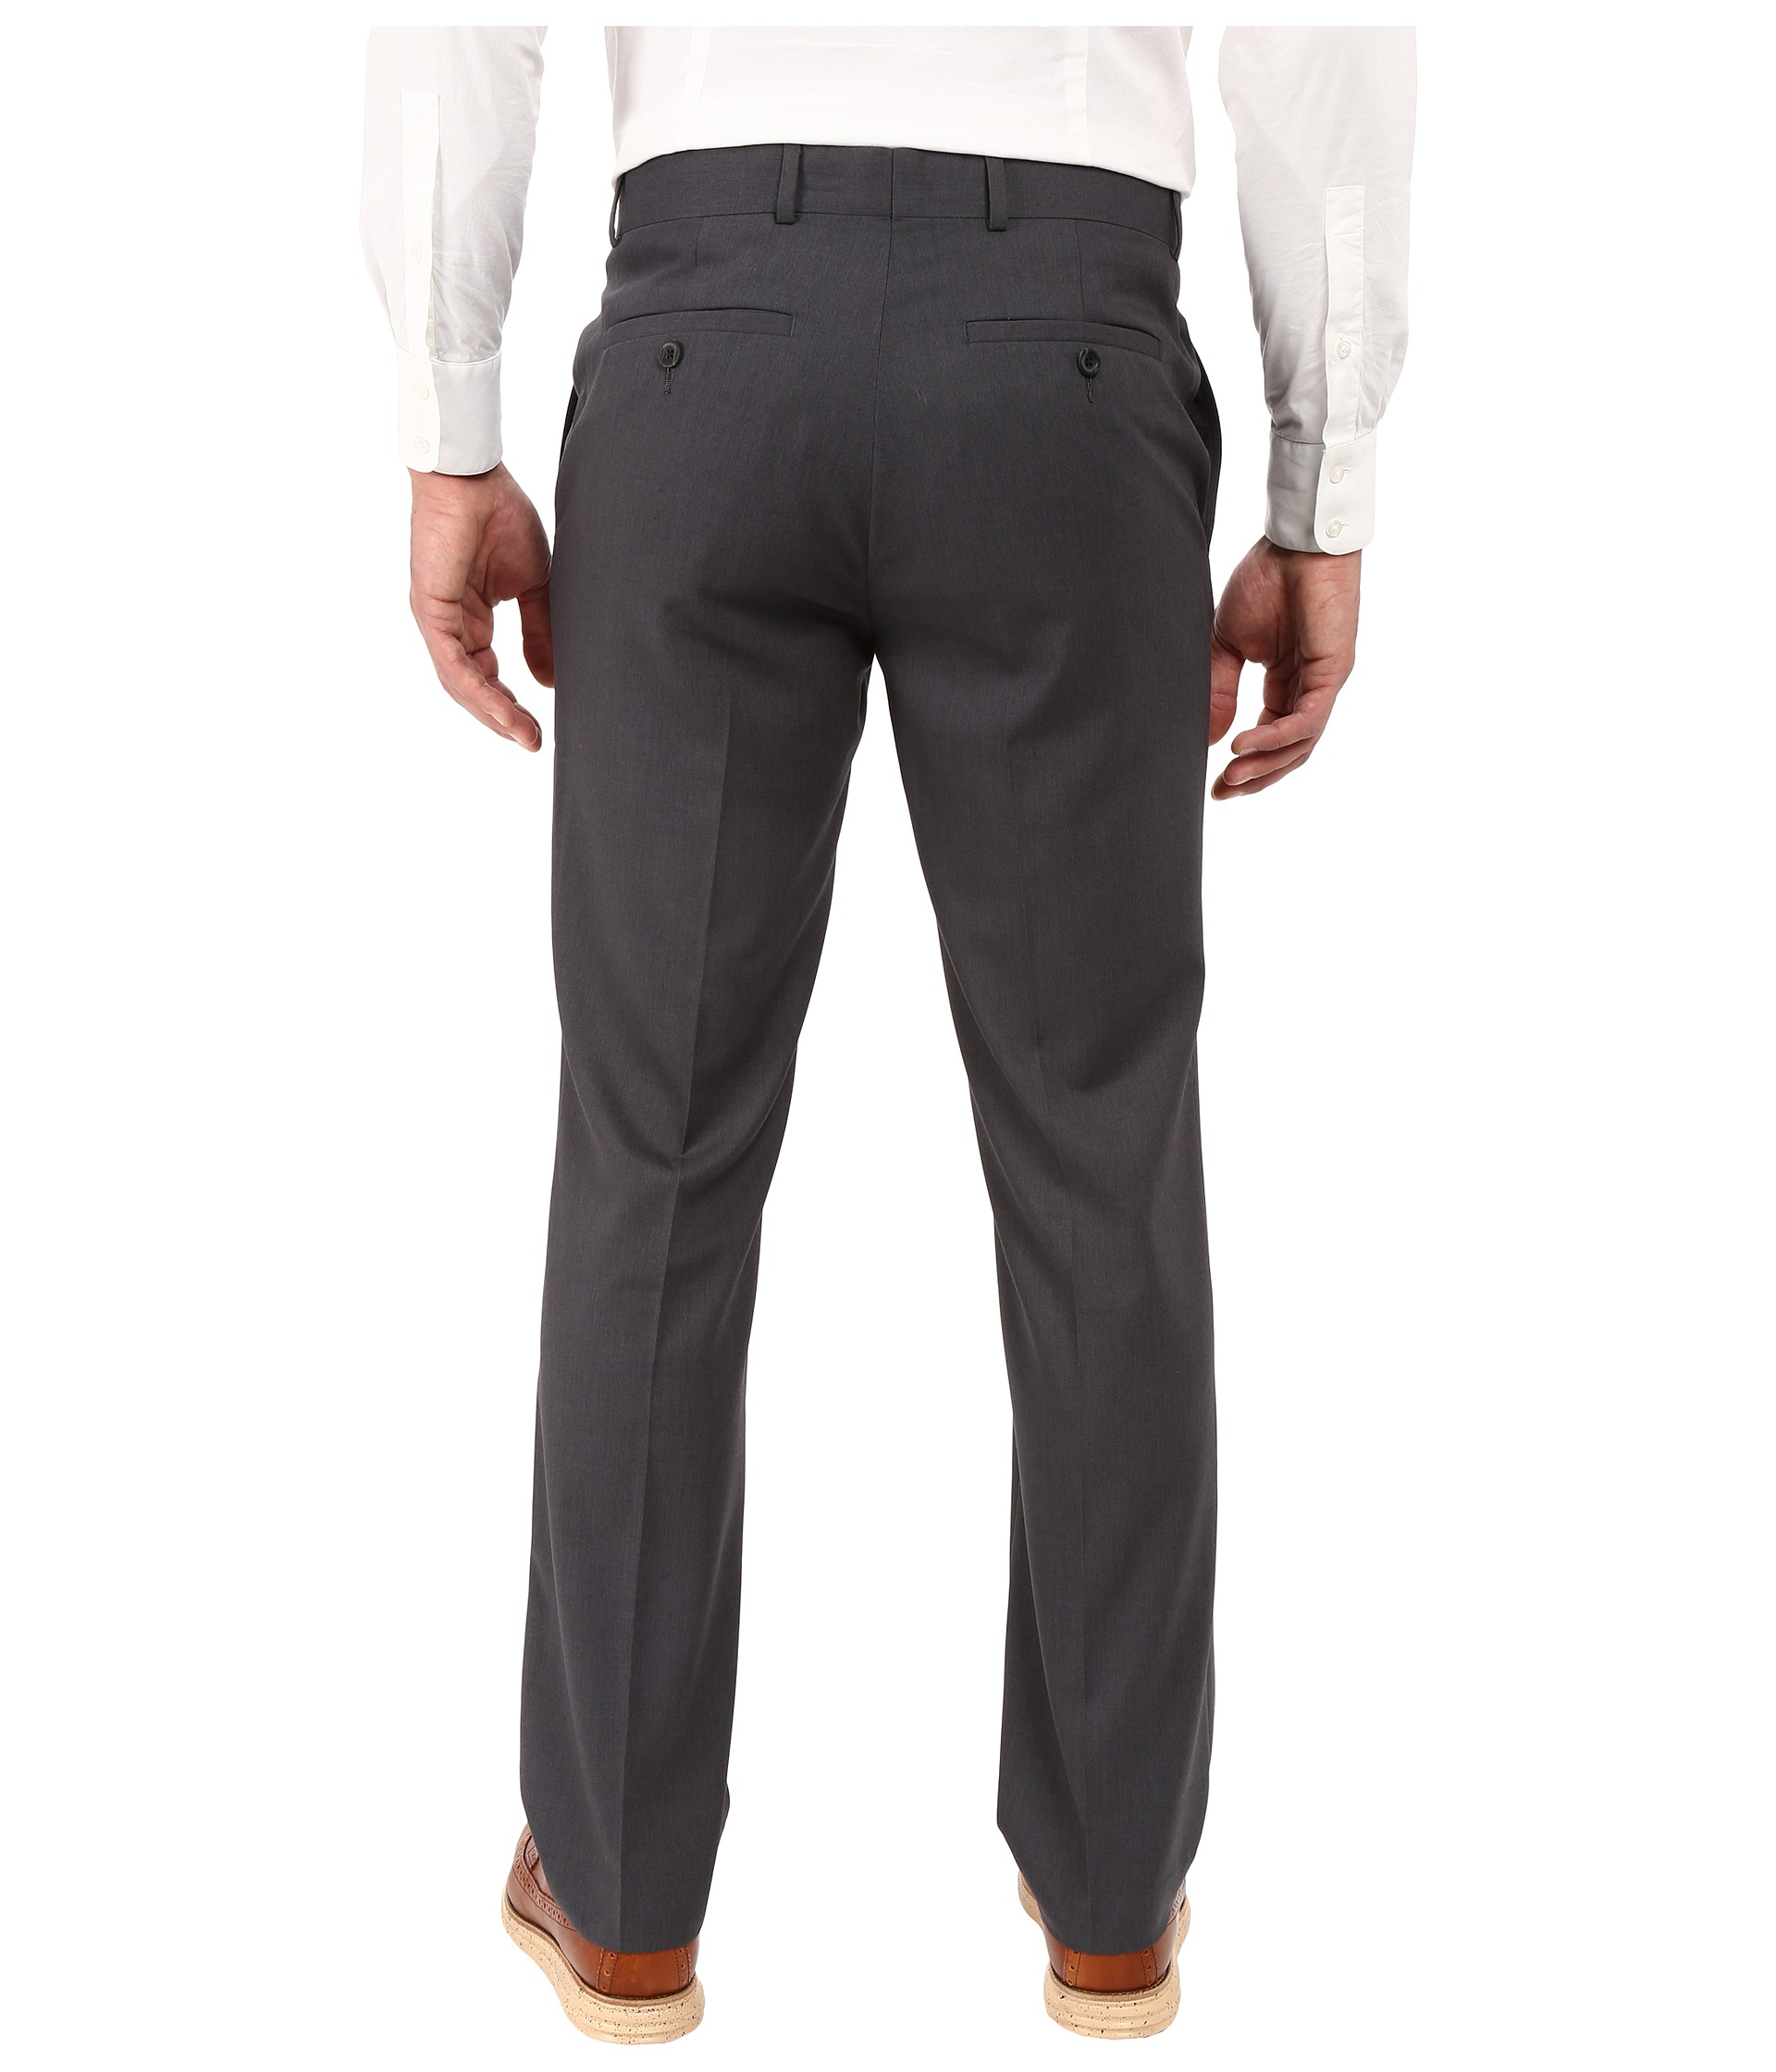 30×36 mens dress pants - Pi Pants